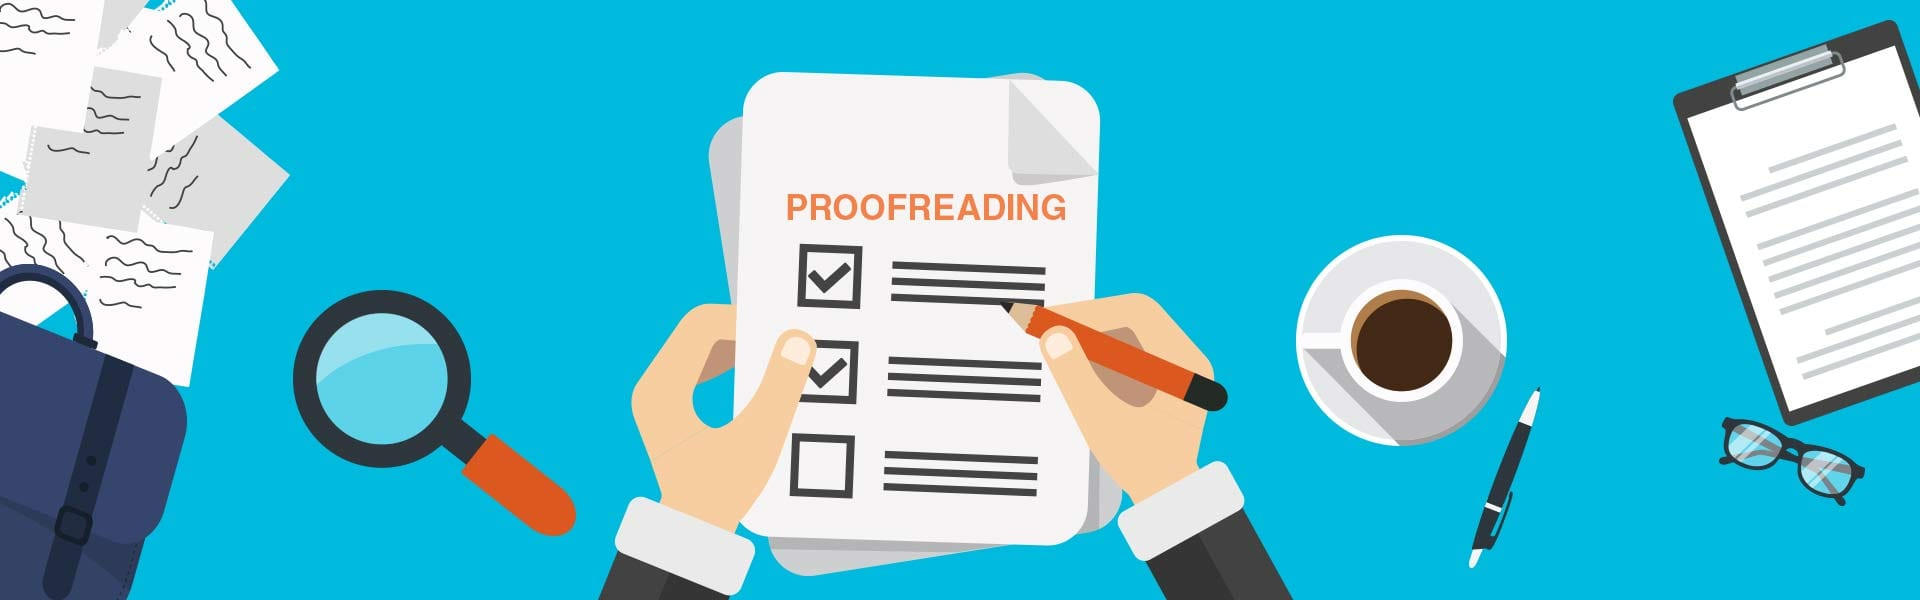 professional proofreading service uk About us proofreading services uk is a british english proofreading service working for clients all over the world we also run qualityproofreadingcoukwe have delivered work for a broad range of clients, including students, academics, universities, businesses and other organisations.